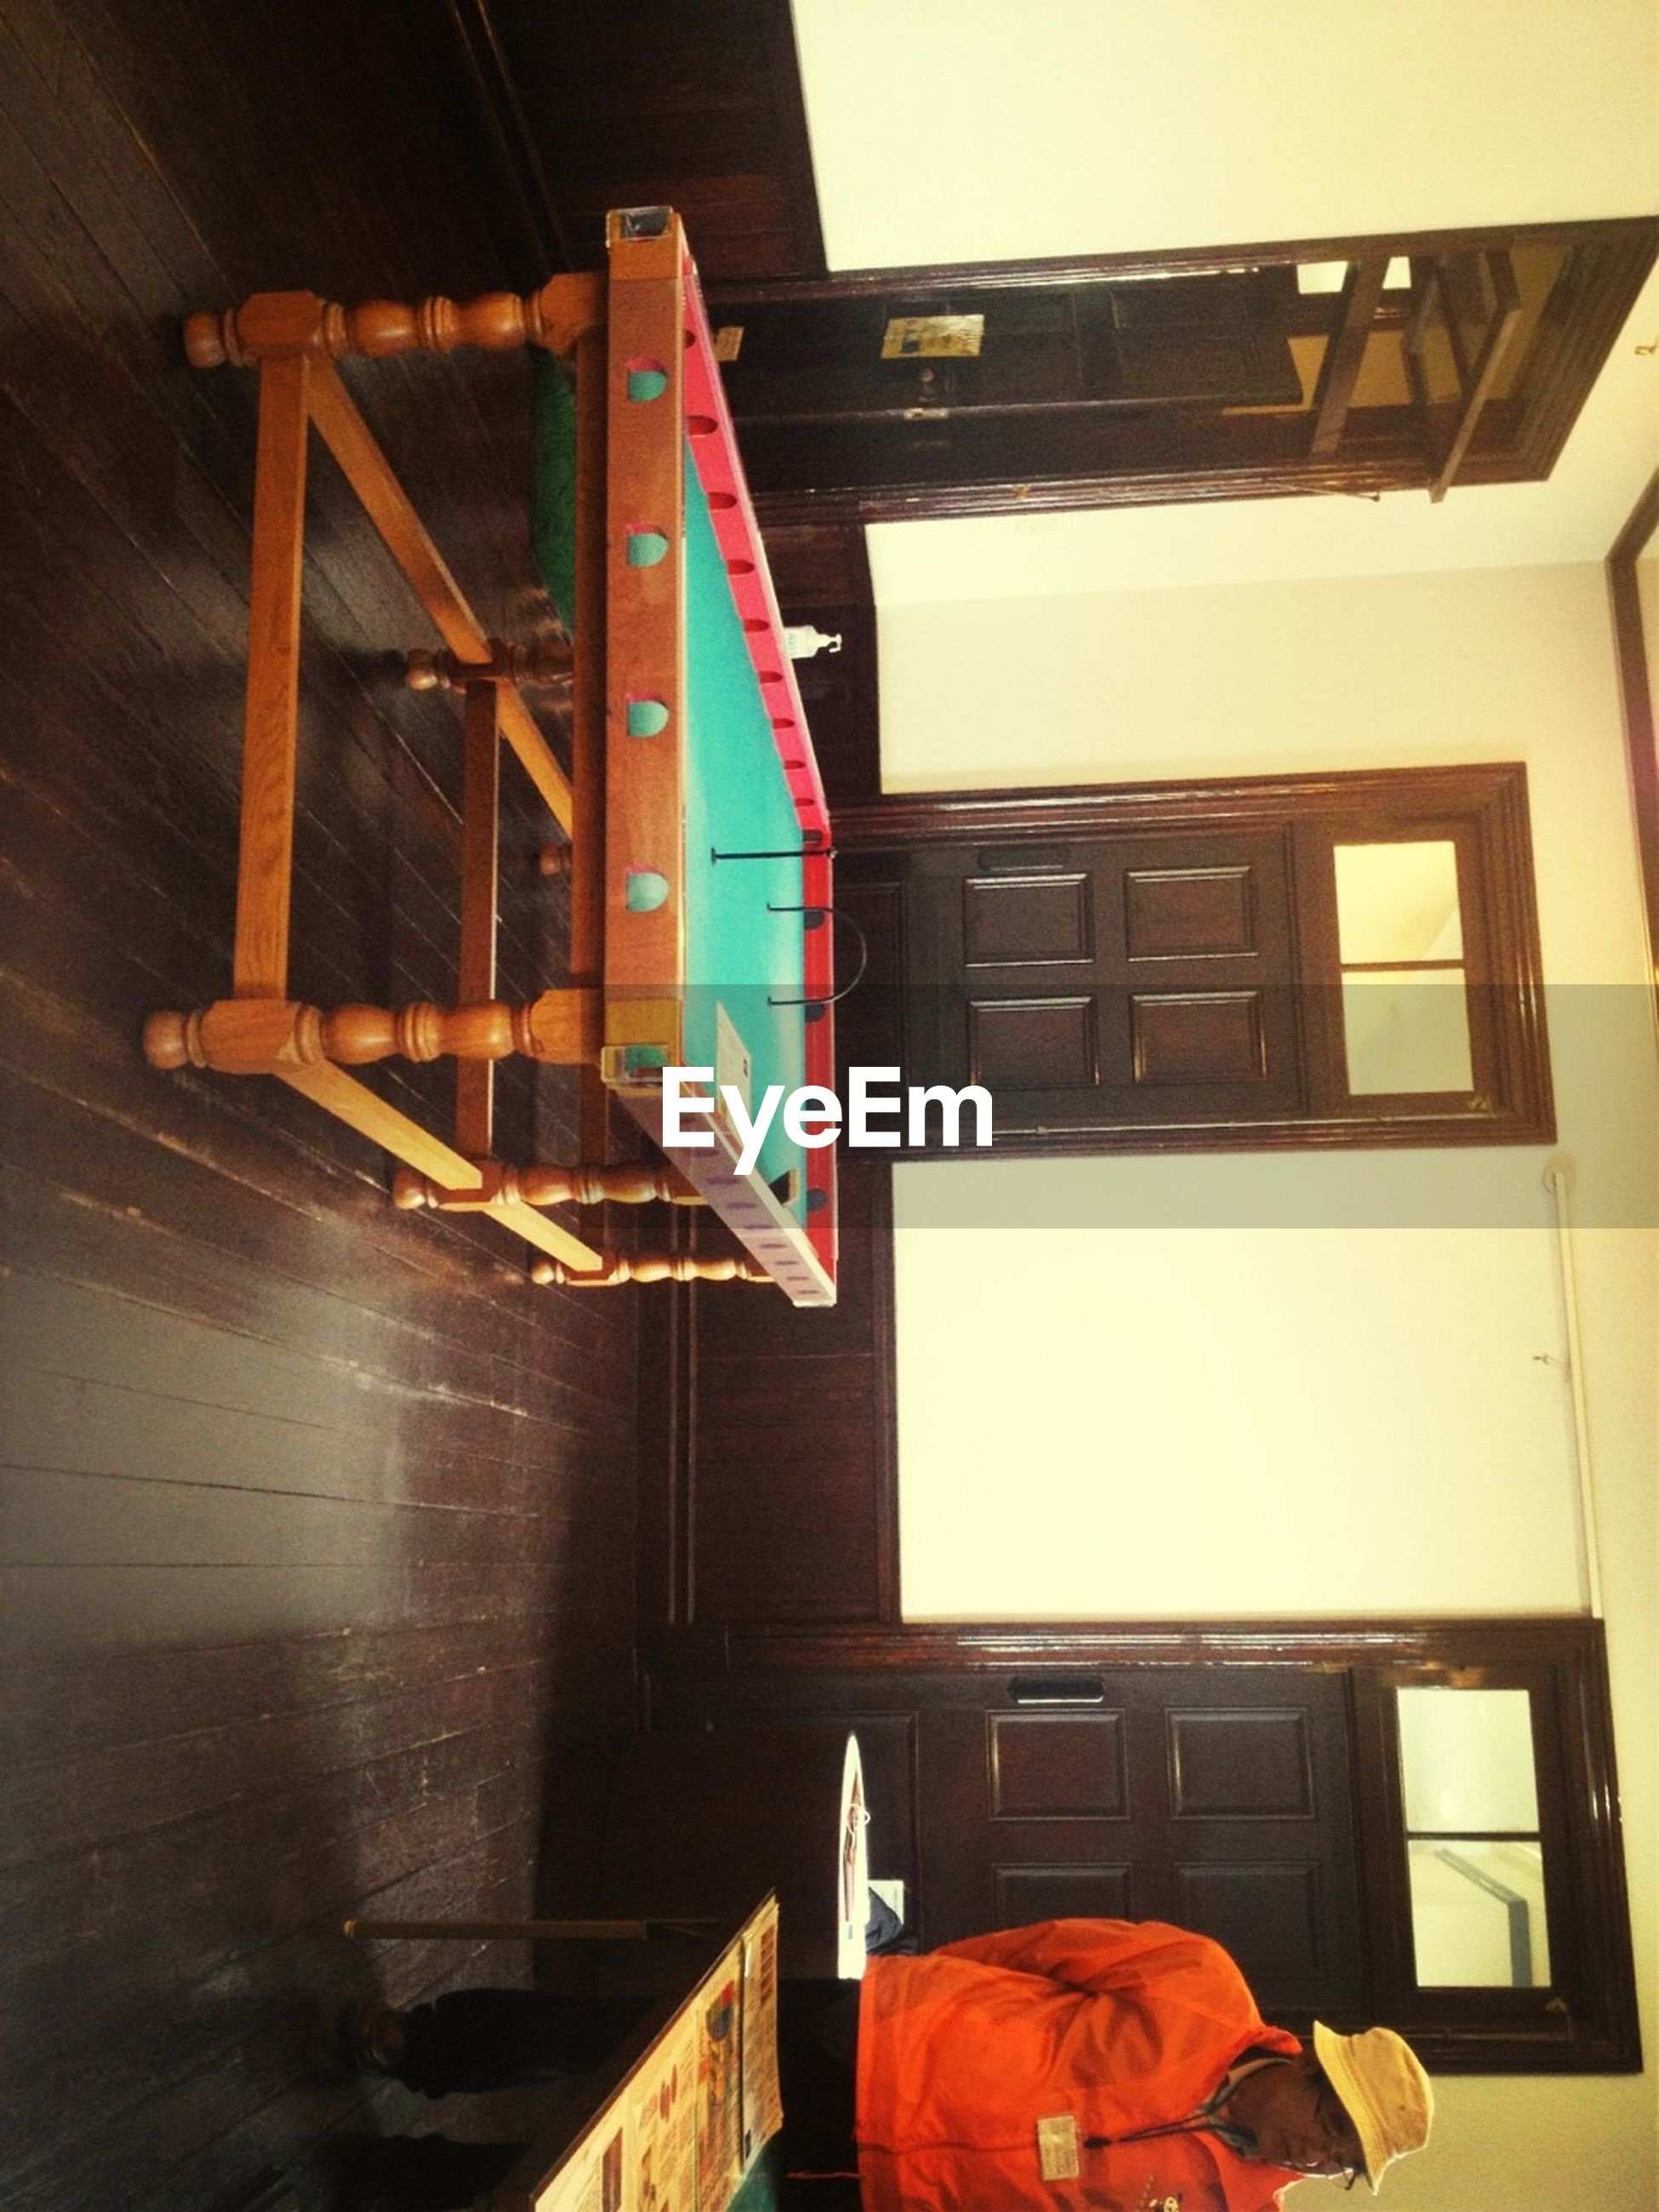 architecture, built structure, building exterior, window, indoors, house, residential building, balcony, low angle view, residential structure, railing, steps, staircase, building, steps and staircases, day, sunlight, clothing, drying, laundry